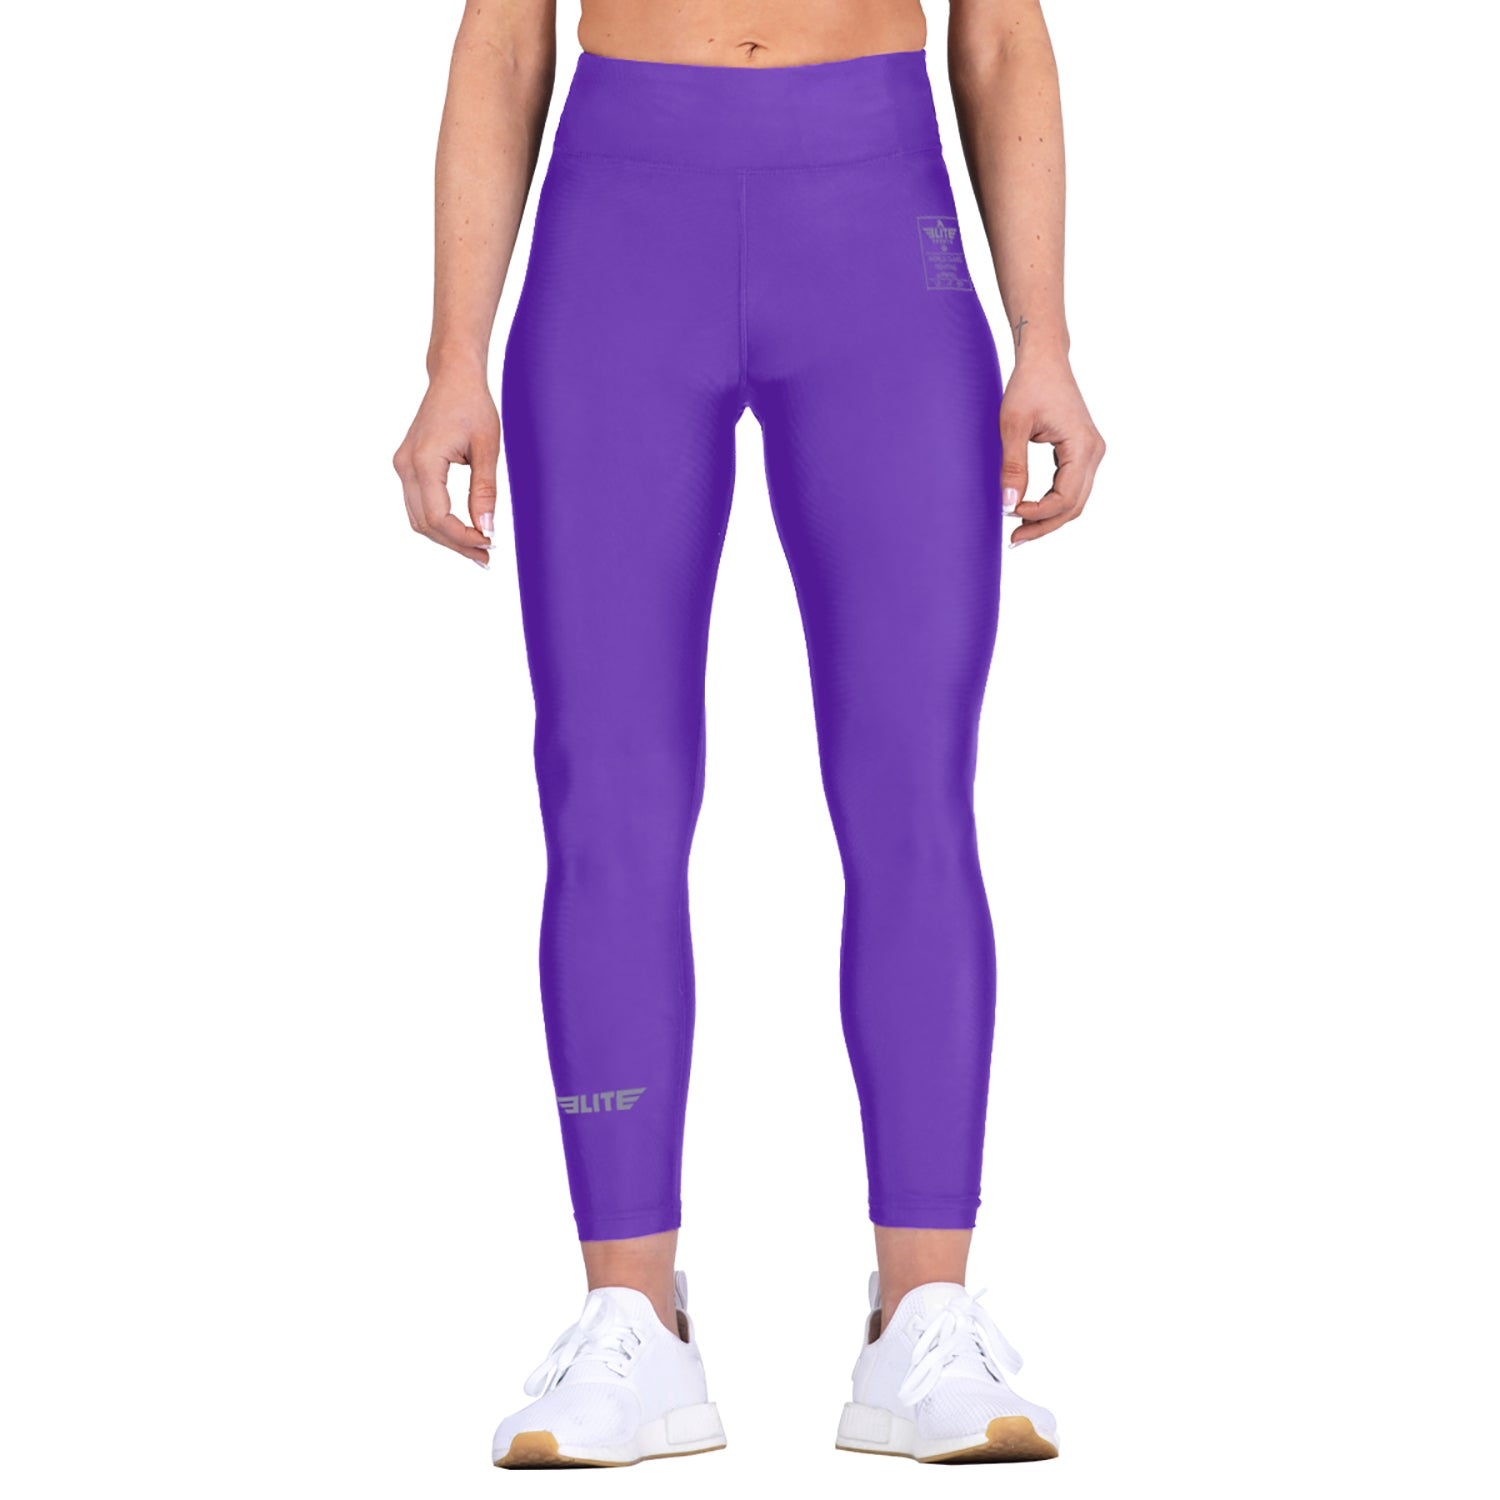 Elite Sports Purple Women Compression Taekwondo Spat Pants